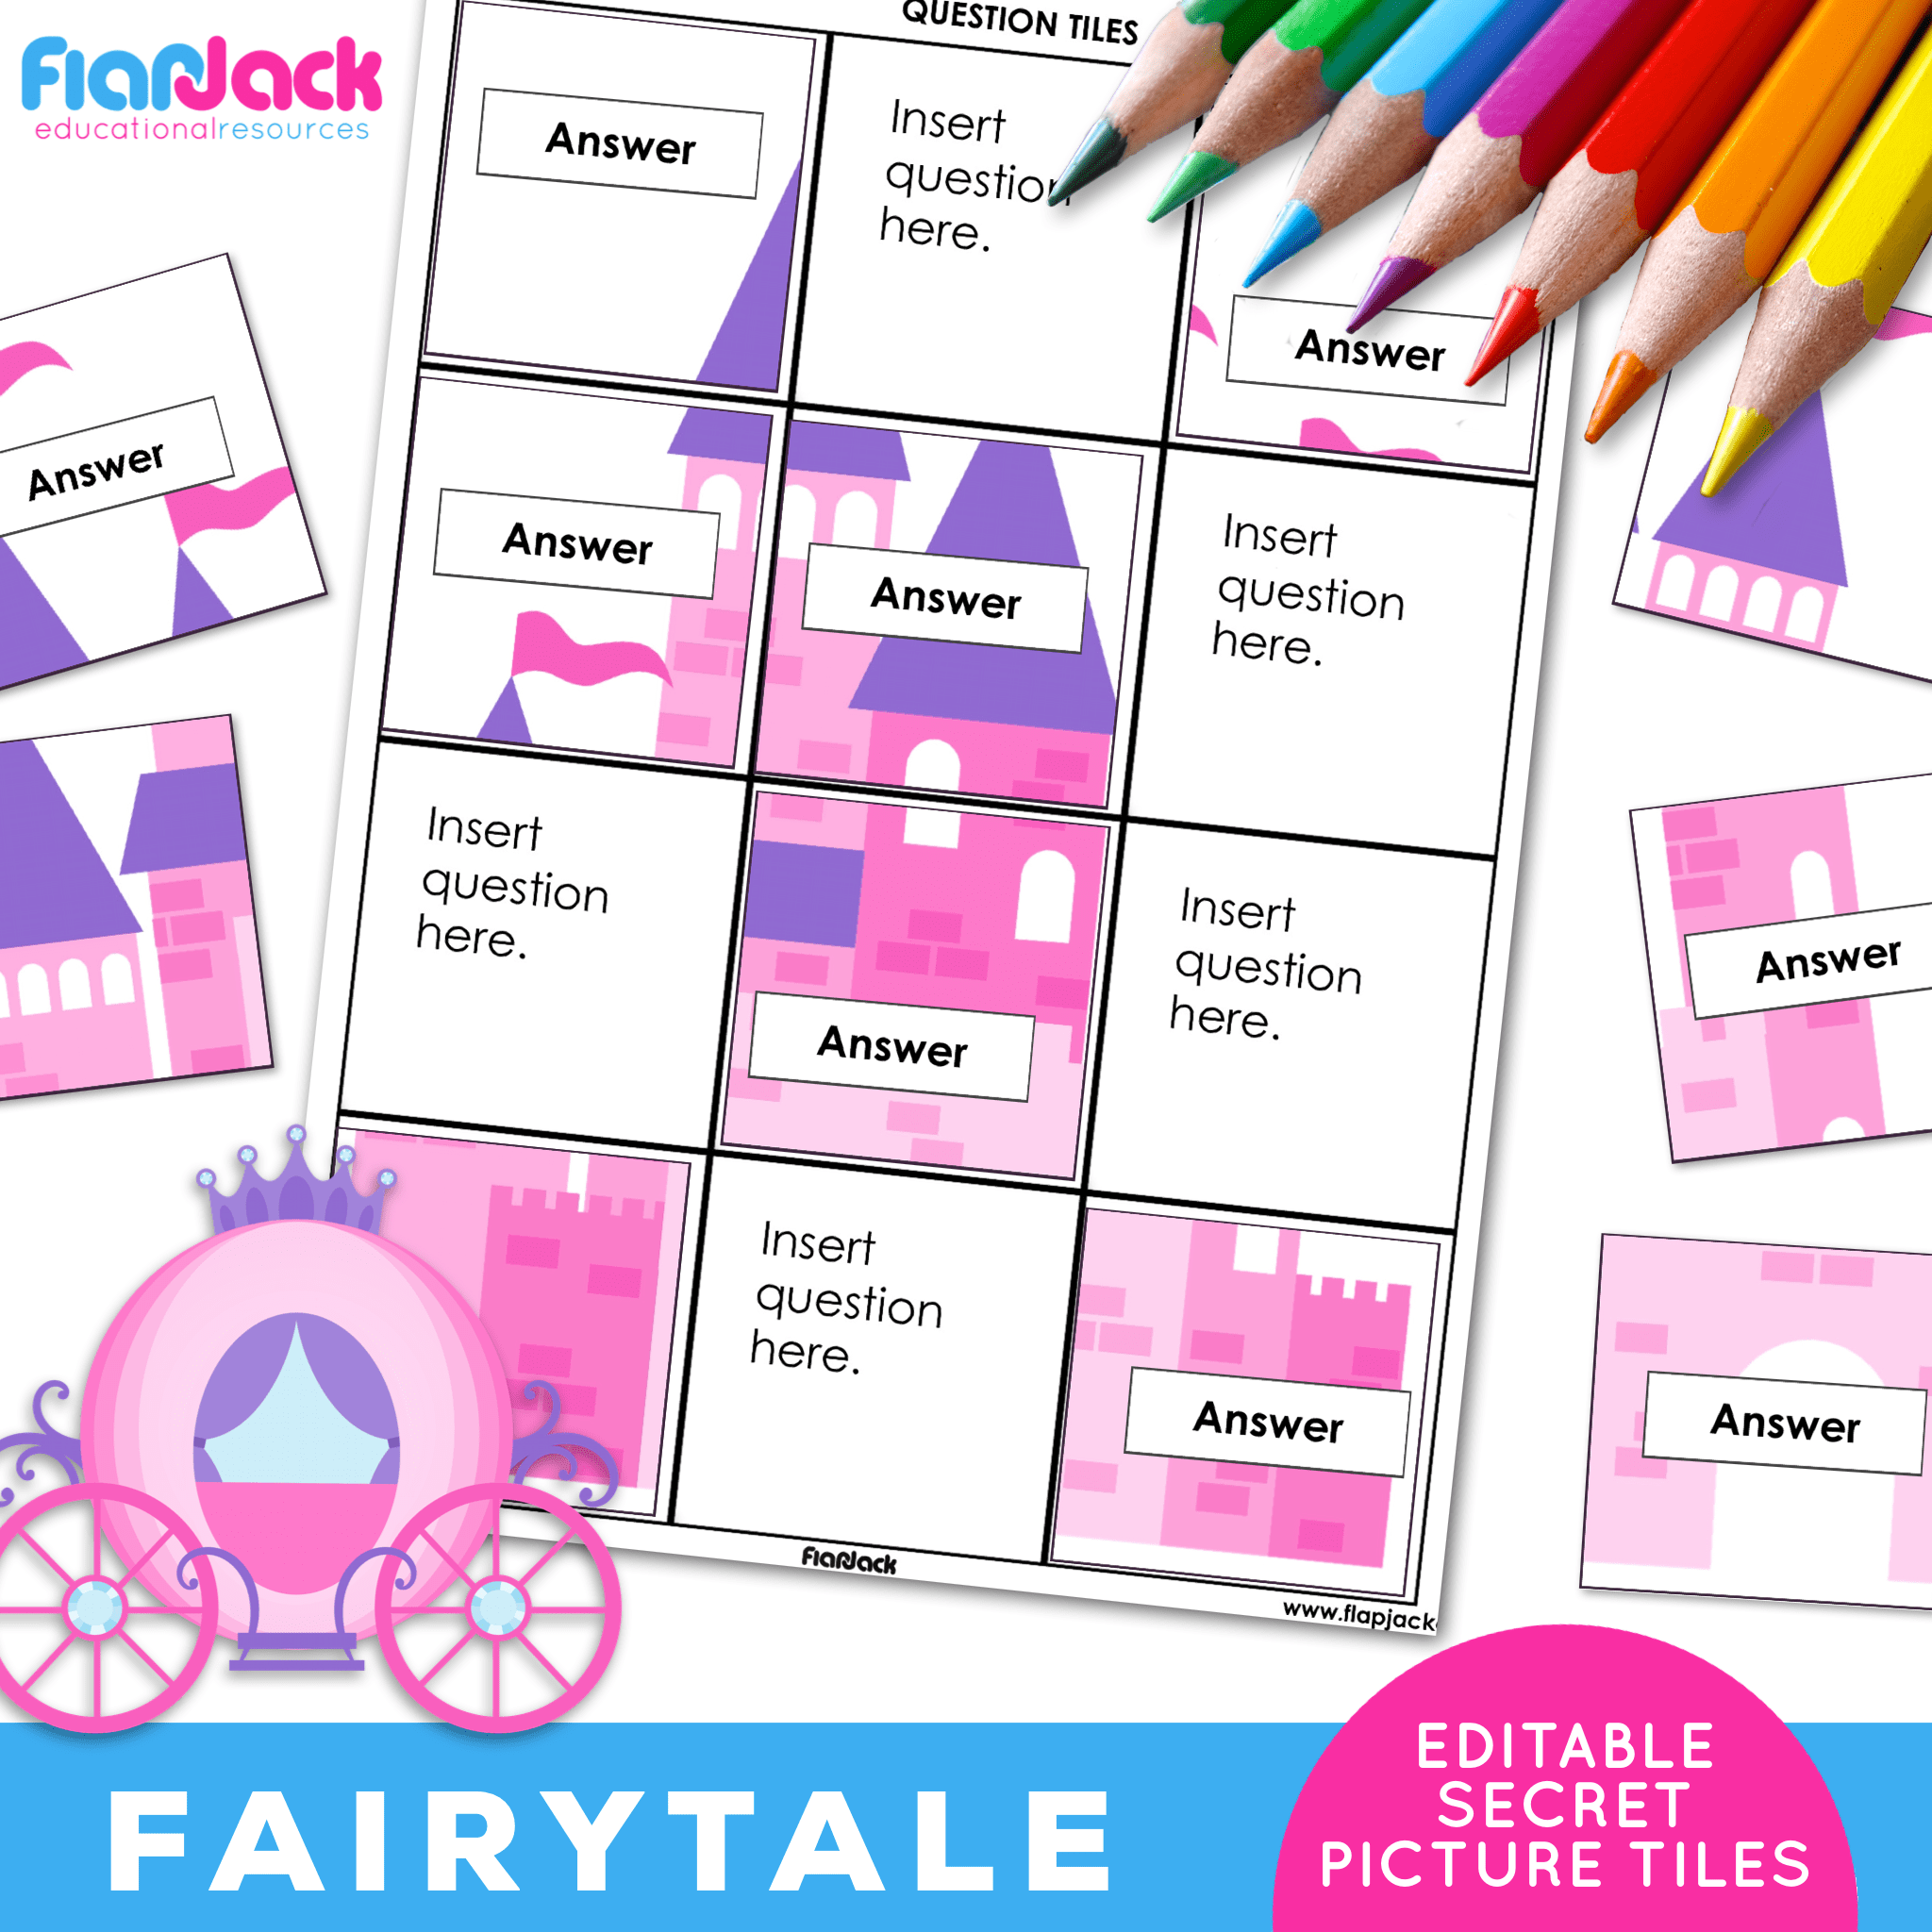 Printable EDITABLE Worksheets | Fairytale